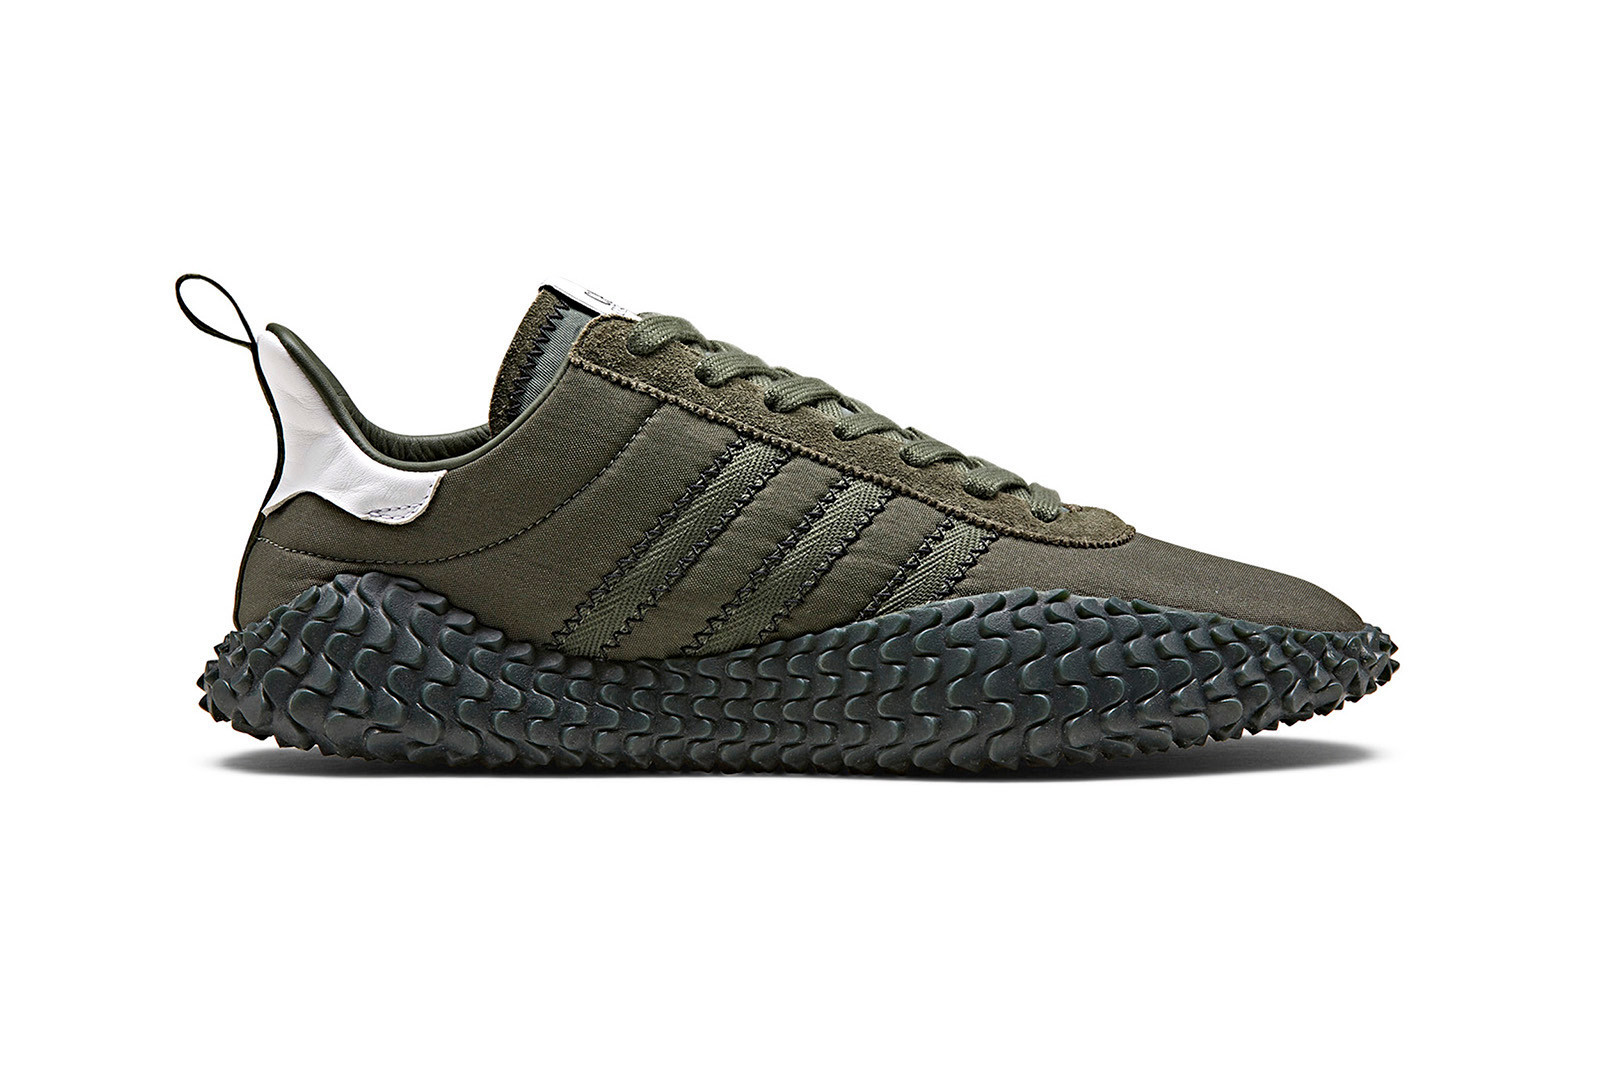 newest b9937 91504 Coming Soon: adidas Originals by C.P. Company Fall/Winter ...